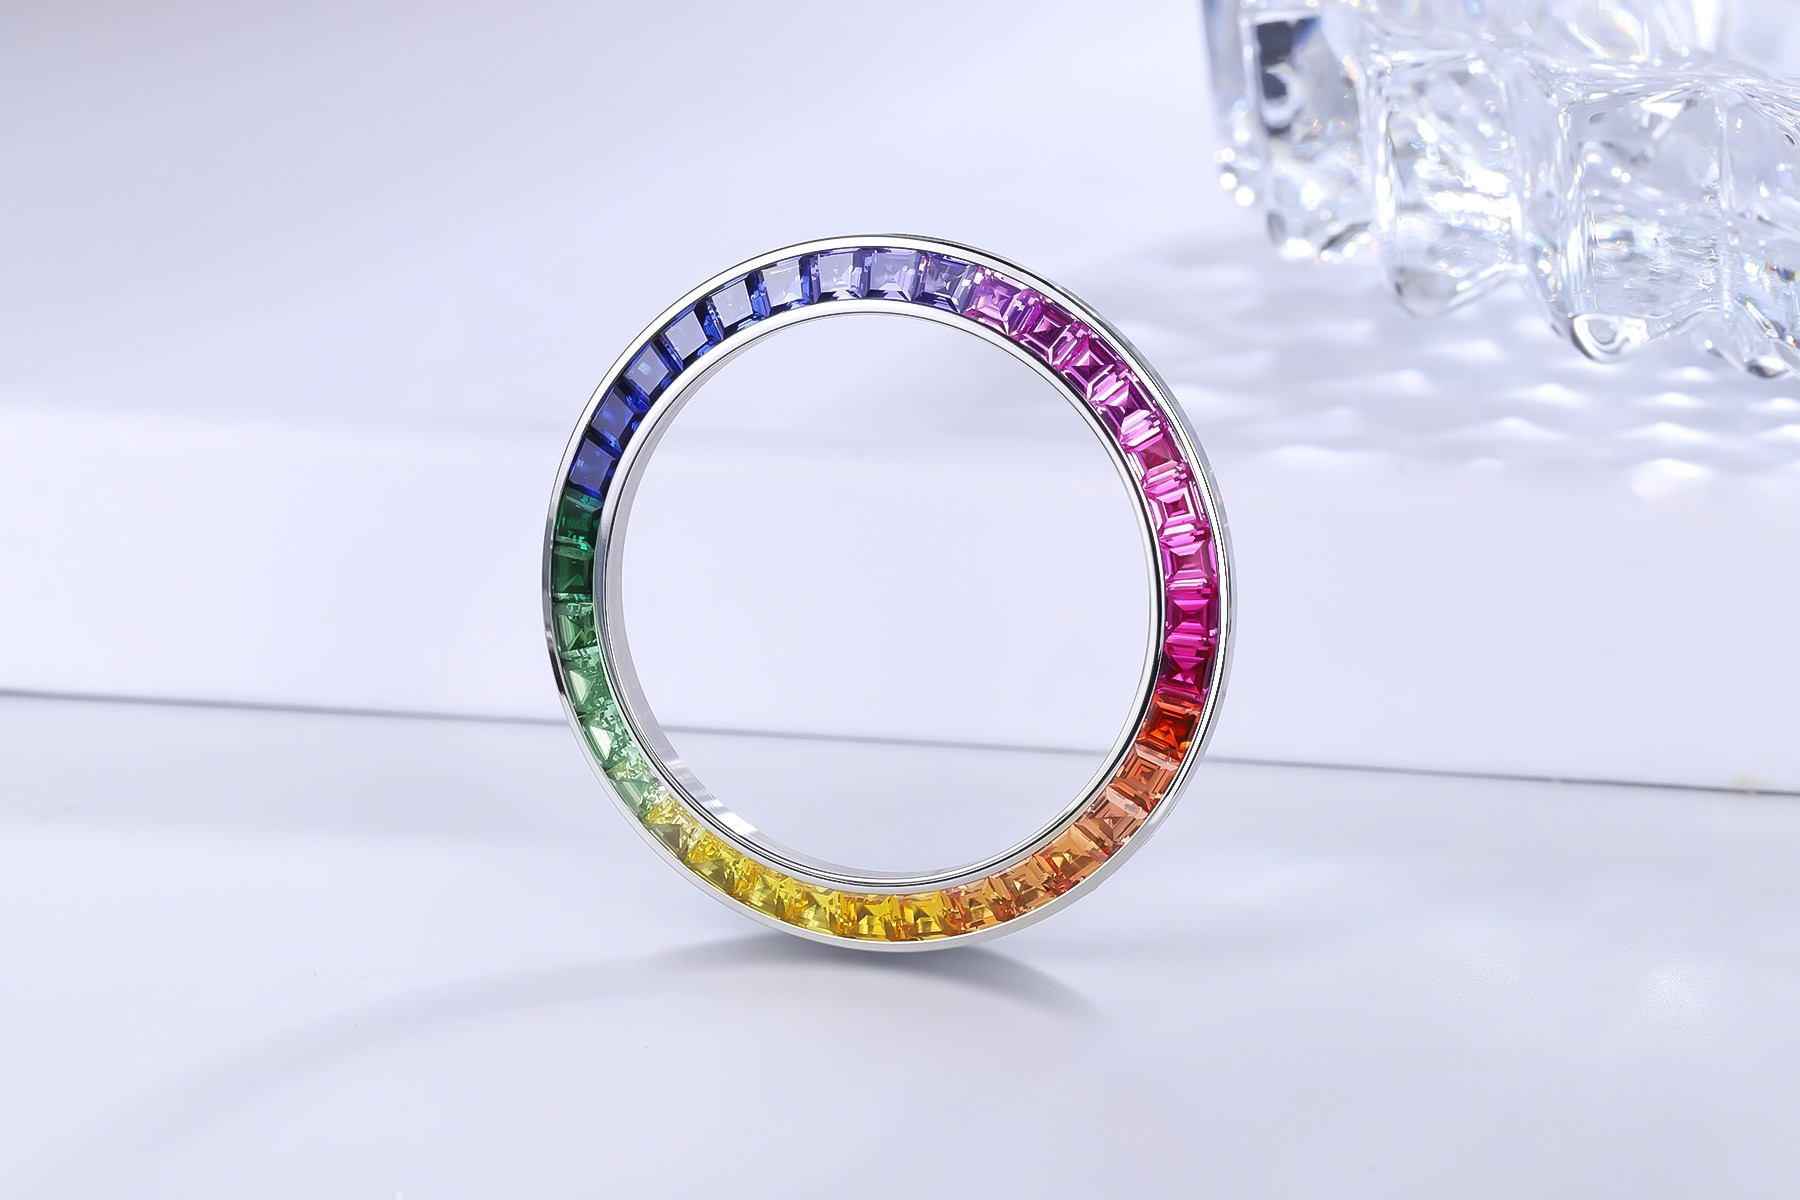 Customized Watch Bezel Daytona Rainbow 40mm Inserts Made Out of Stainless Steel with Created Sapphire